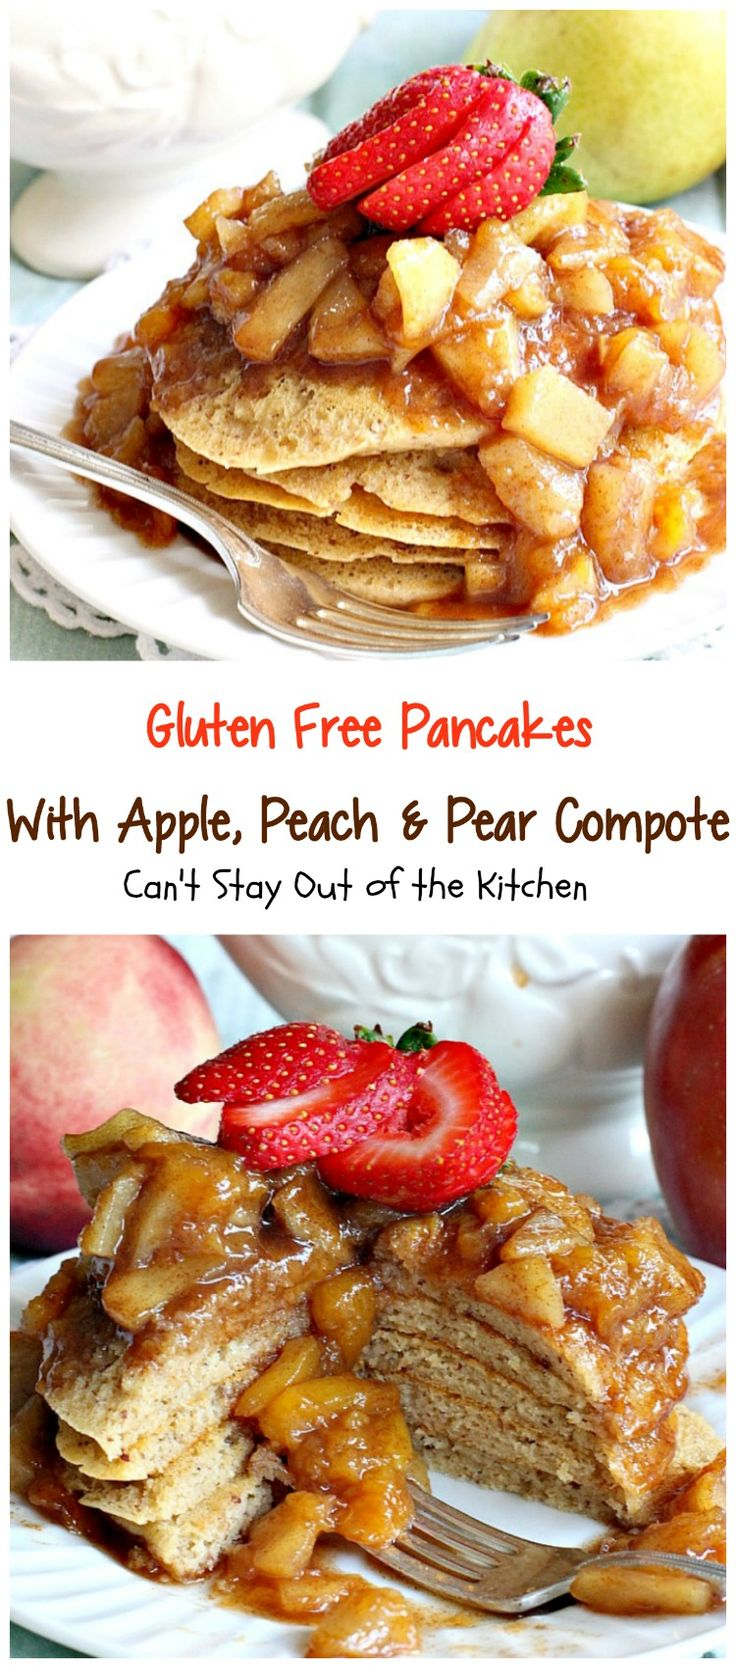 Gluten Free Pancakes with Apple, Peach & Pear Compote   Can't Stay Out of the Kitchen